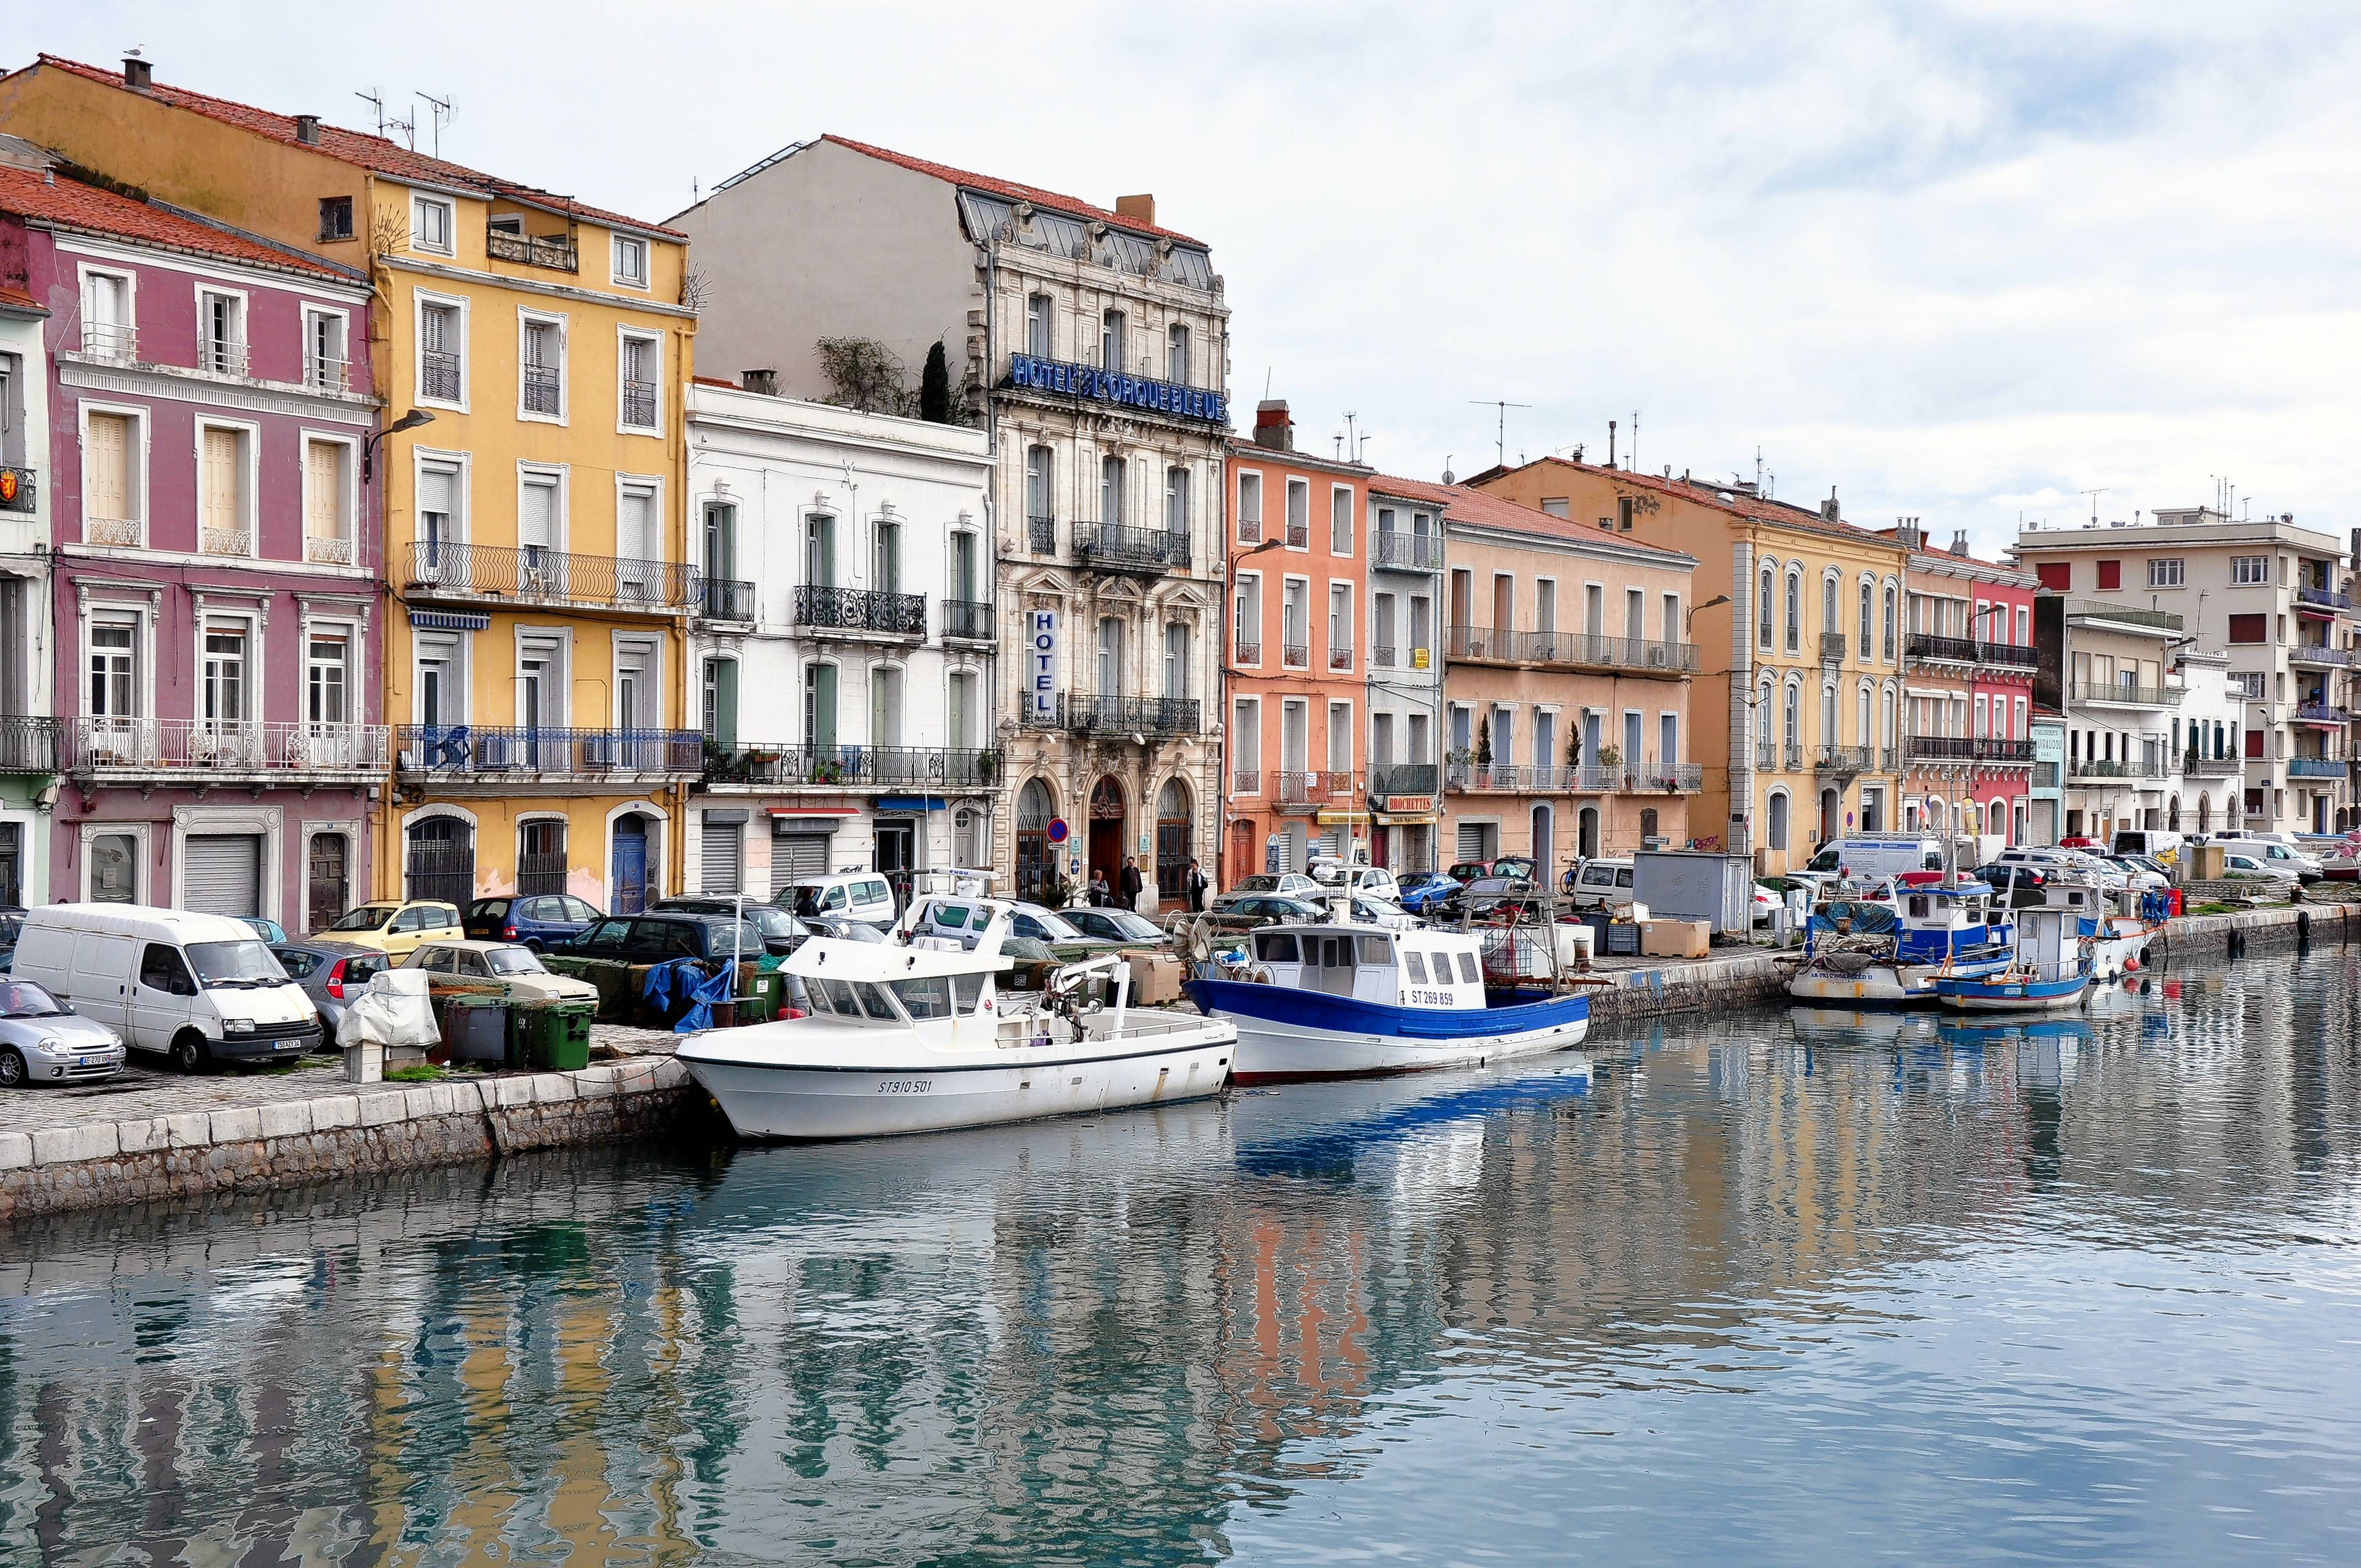 Sète is the biggest fishing port on the French Mediterranean. The business district is crisscrossed by canals lined with shops, hotels and restaurants in pastel-colored buildings.